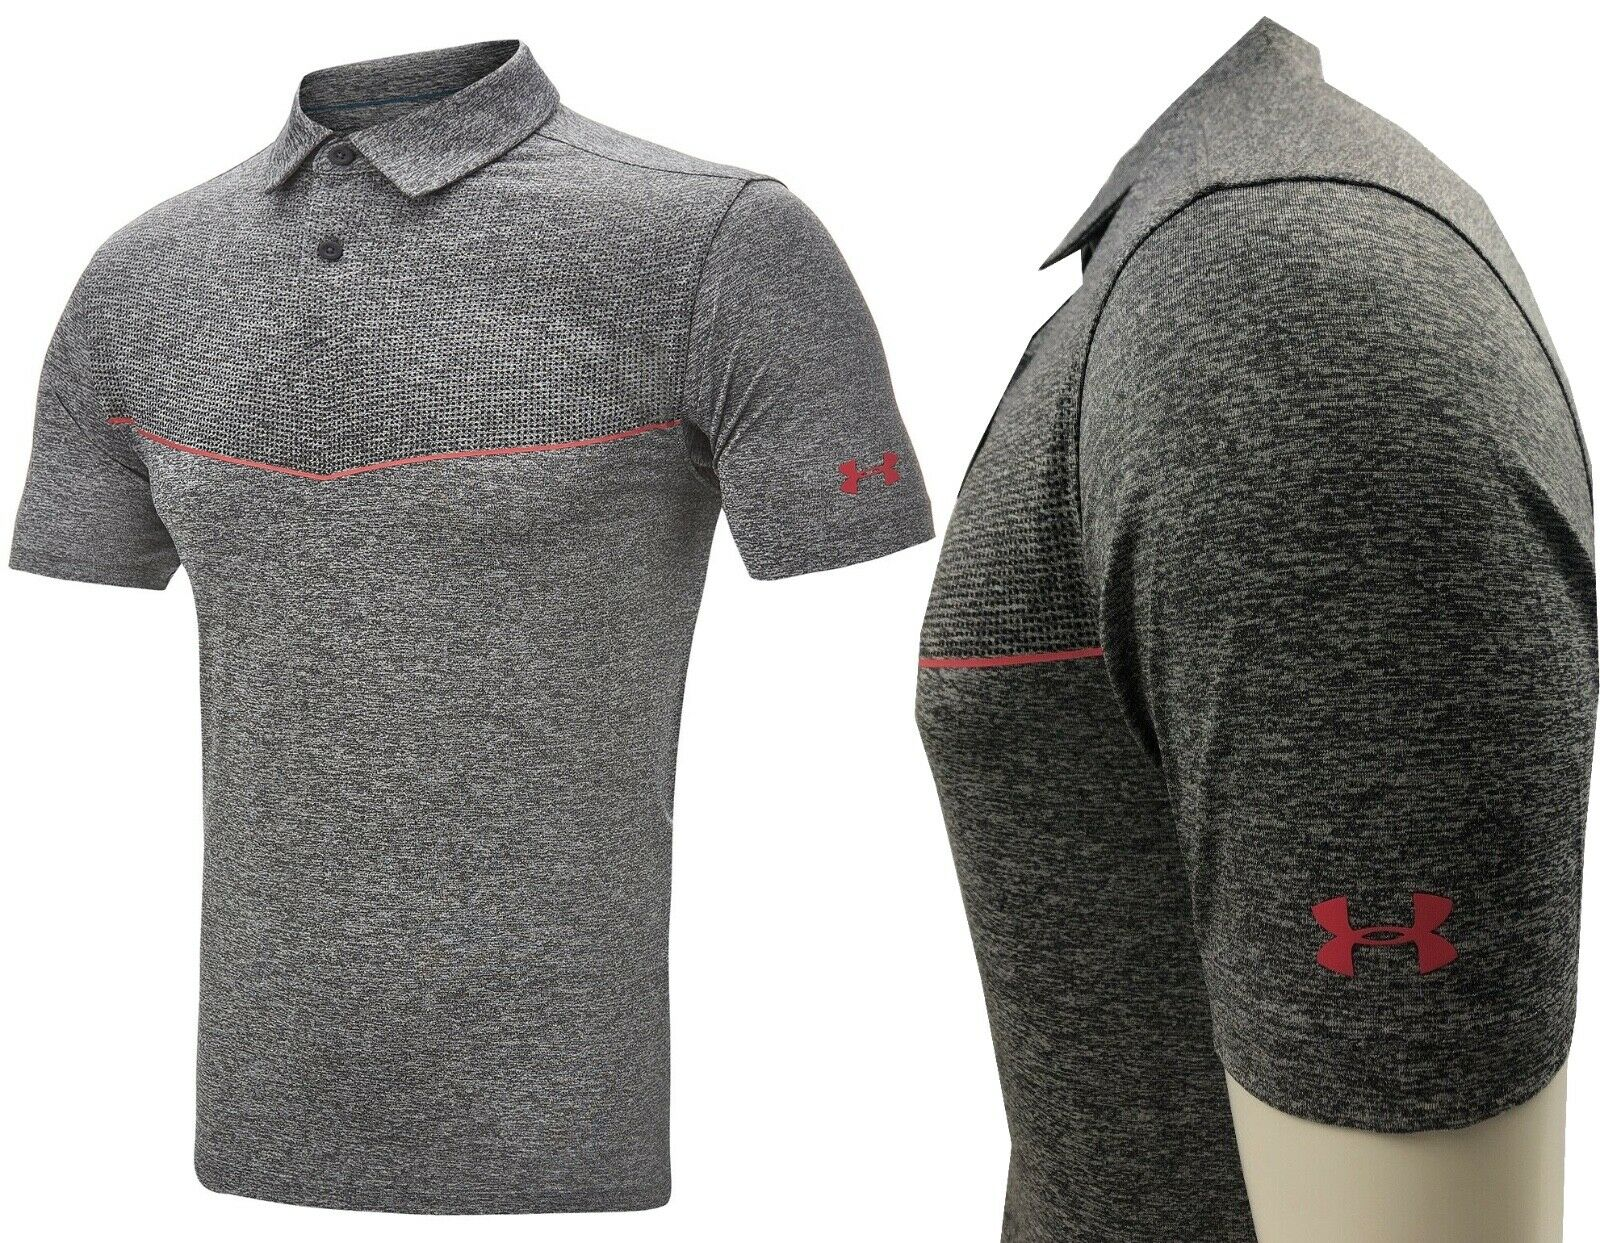 Under Armour UA Cool Switch Graphic Golf Polo Shirt